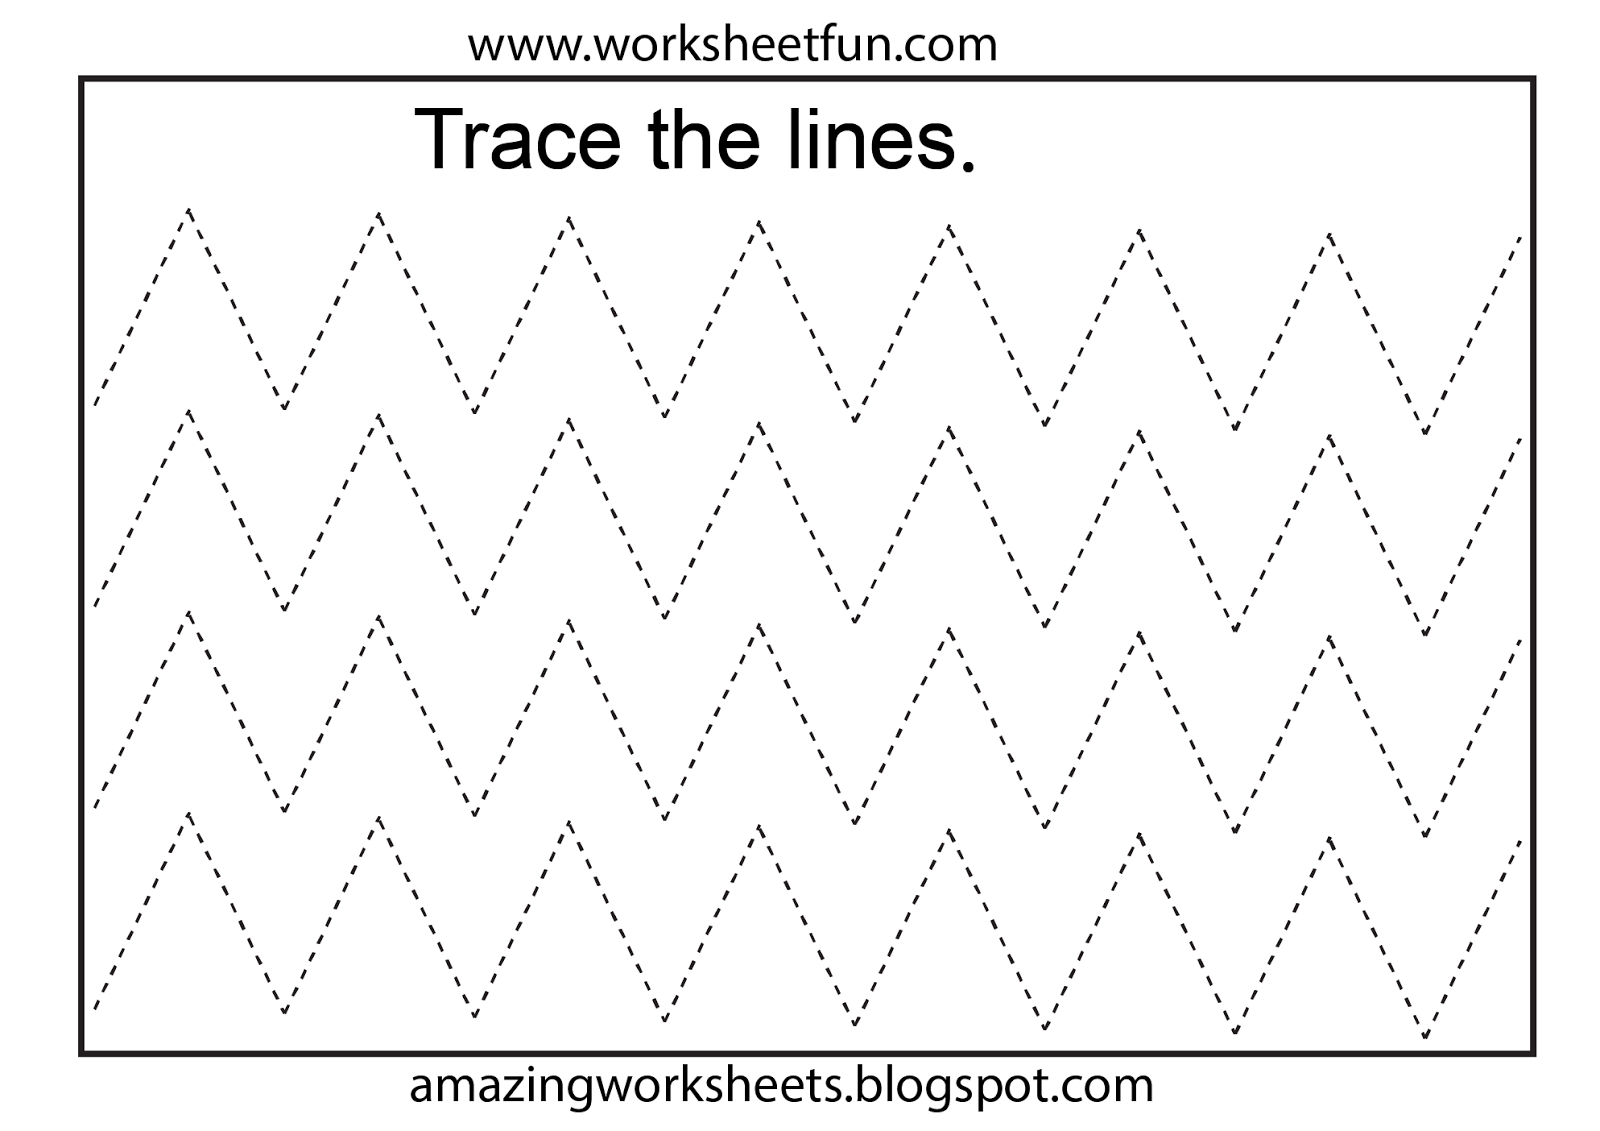 Free Printable Tracing Worksheets Preschool | Preschool Worksheets | Free Printable Fine Motor Skills Worksheets